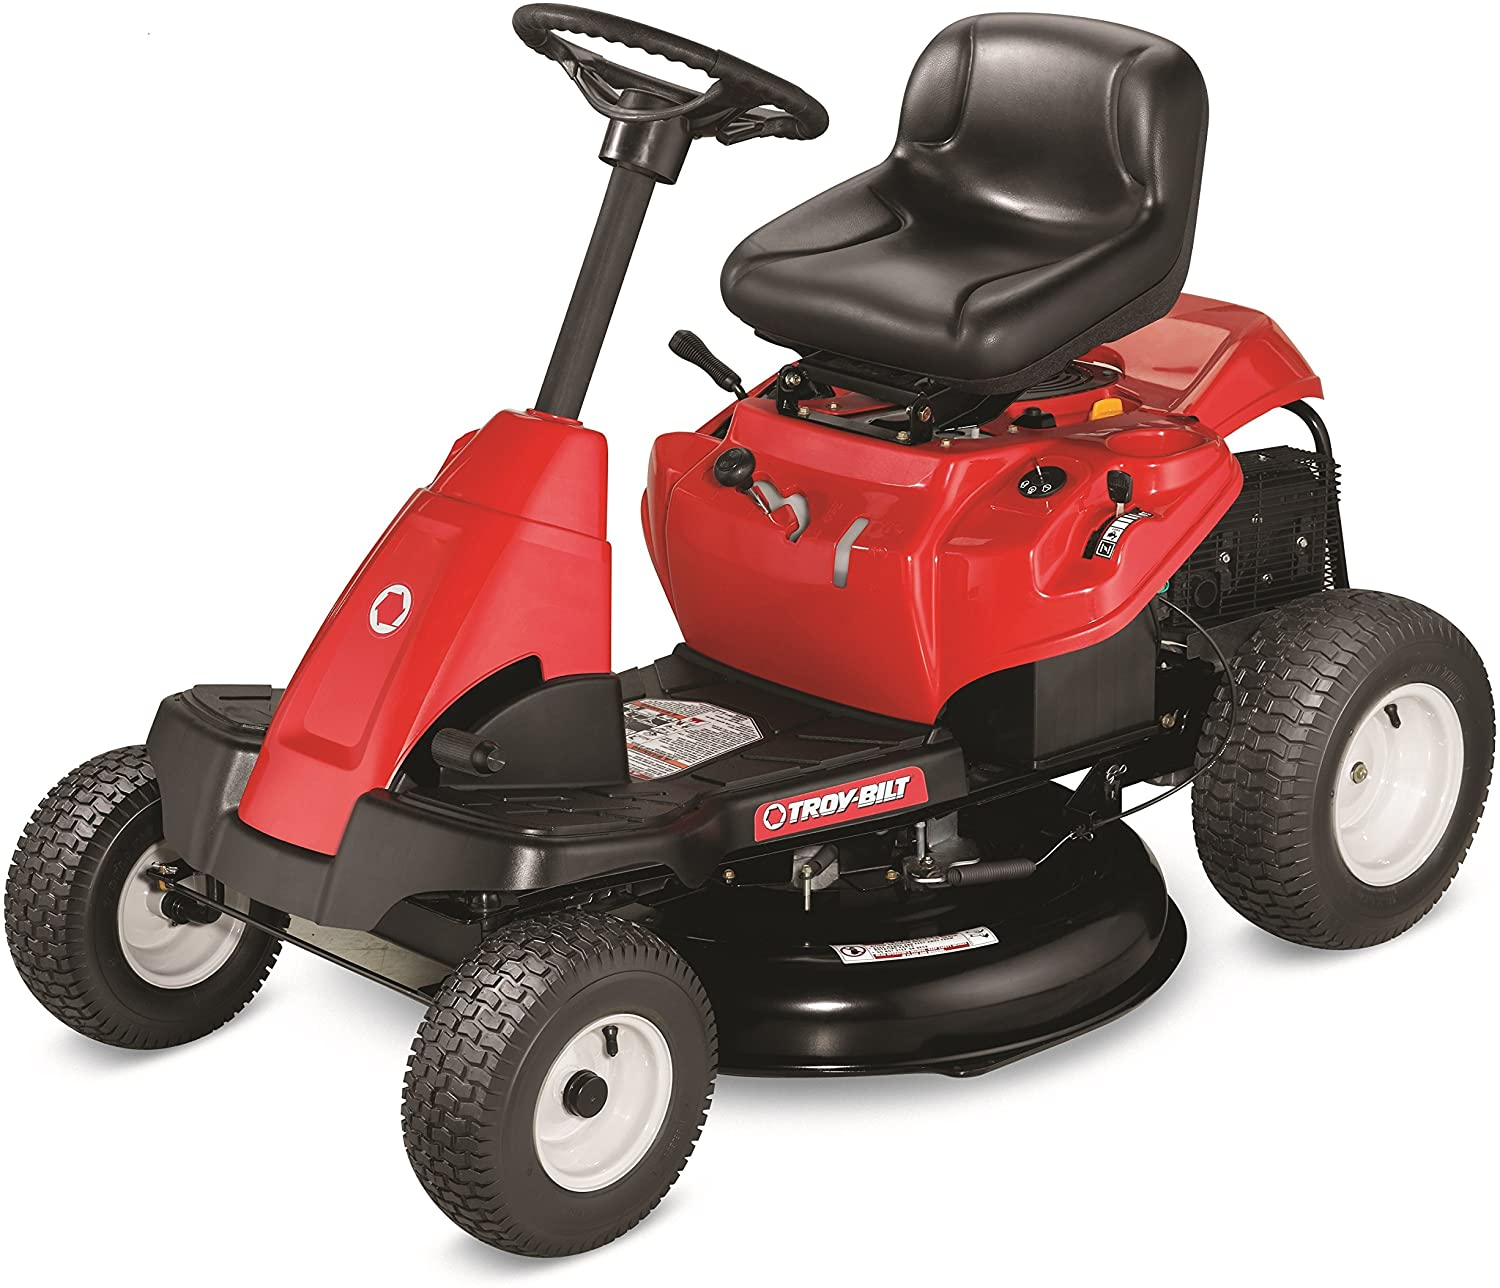 The 30-Inch OHV Premium Neighborhood 382cc Powermore Riding Lawn Mowers from Troy-Bilt